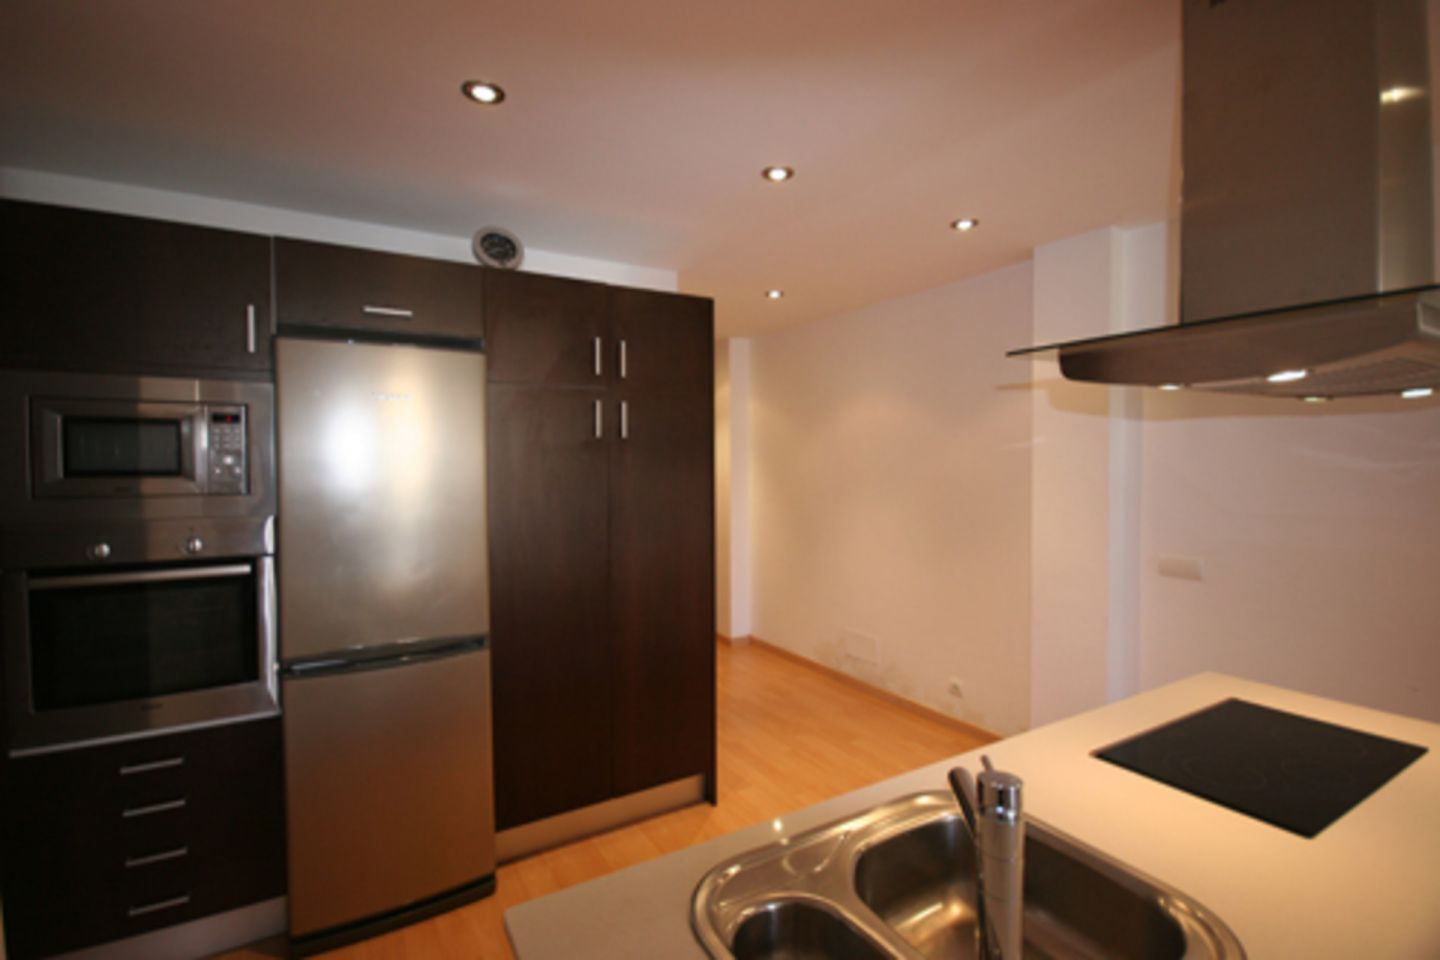 2 Bed Apartment for sale in PUERTO POLLENSA 5